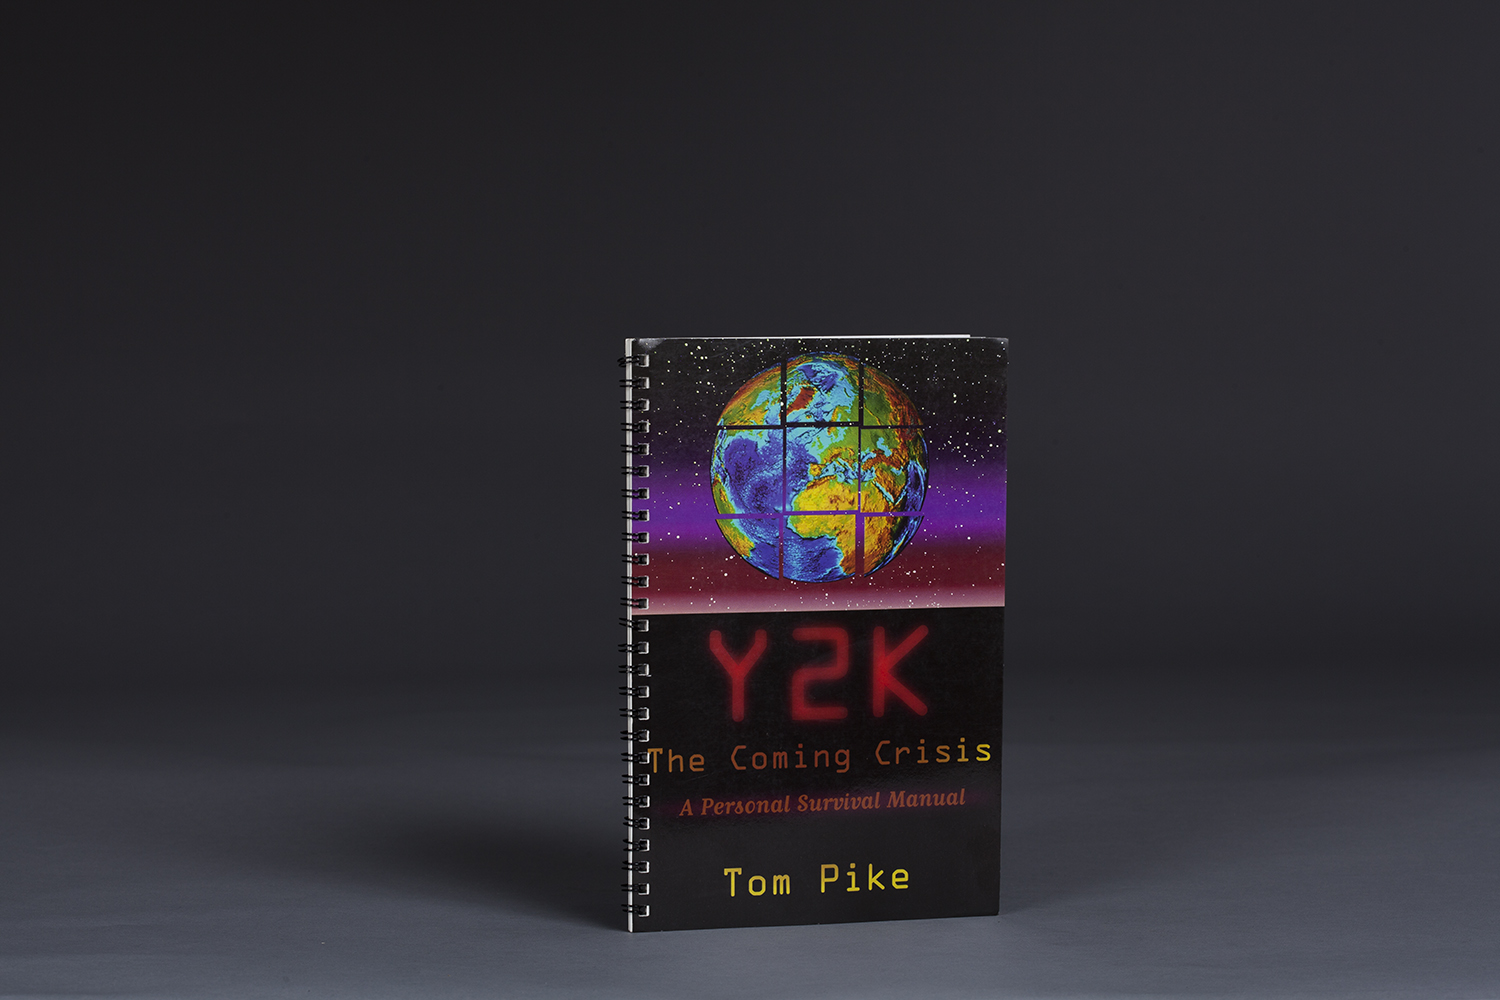 Y2K The Coming Crisis - 9963 Cover.jpg